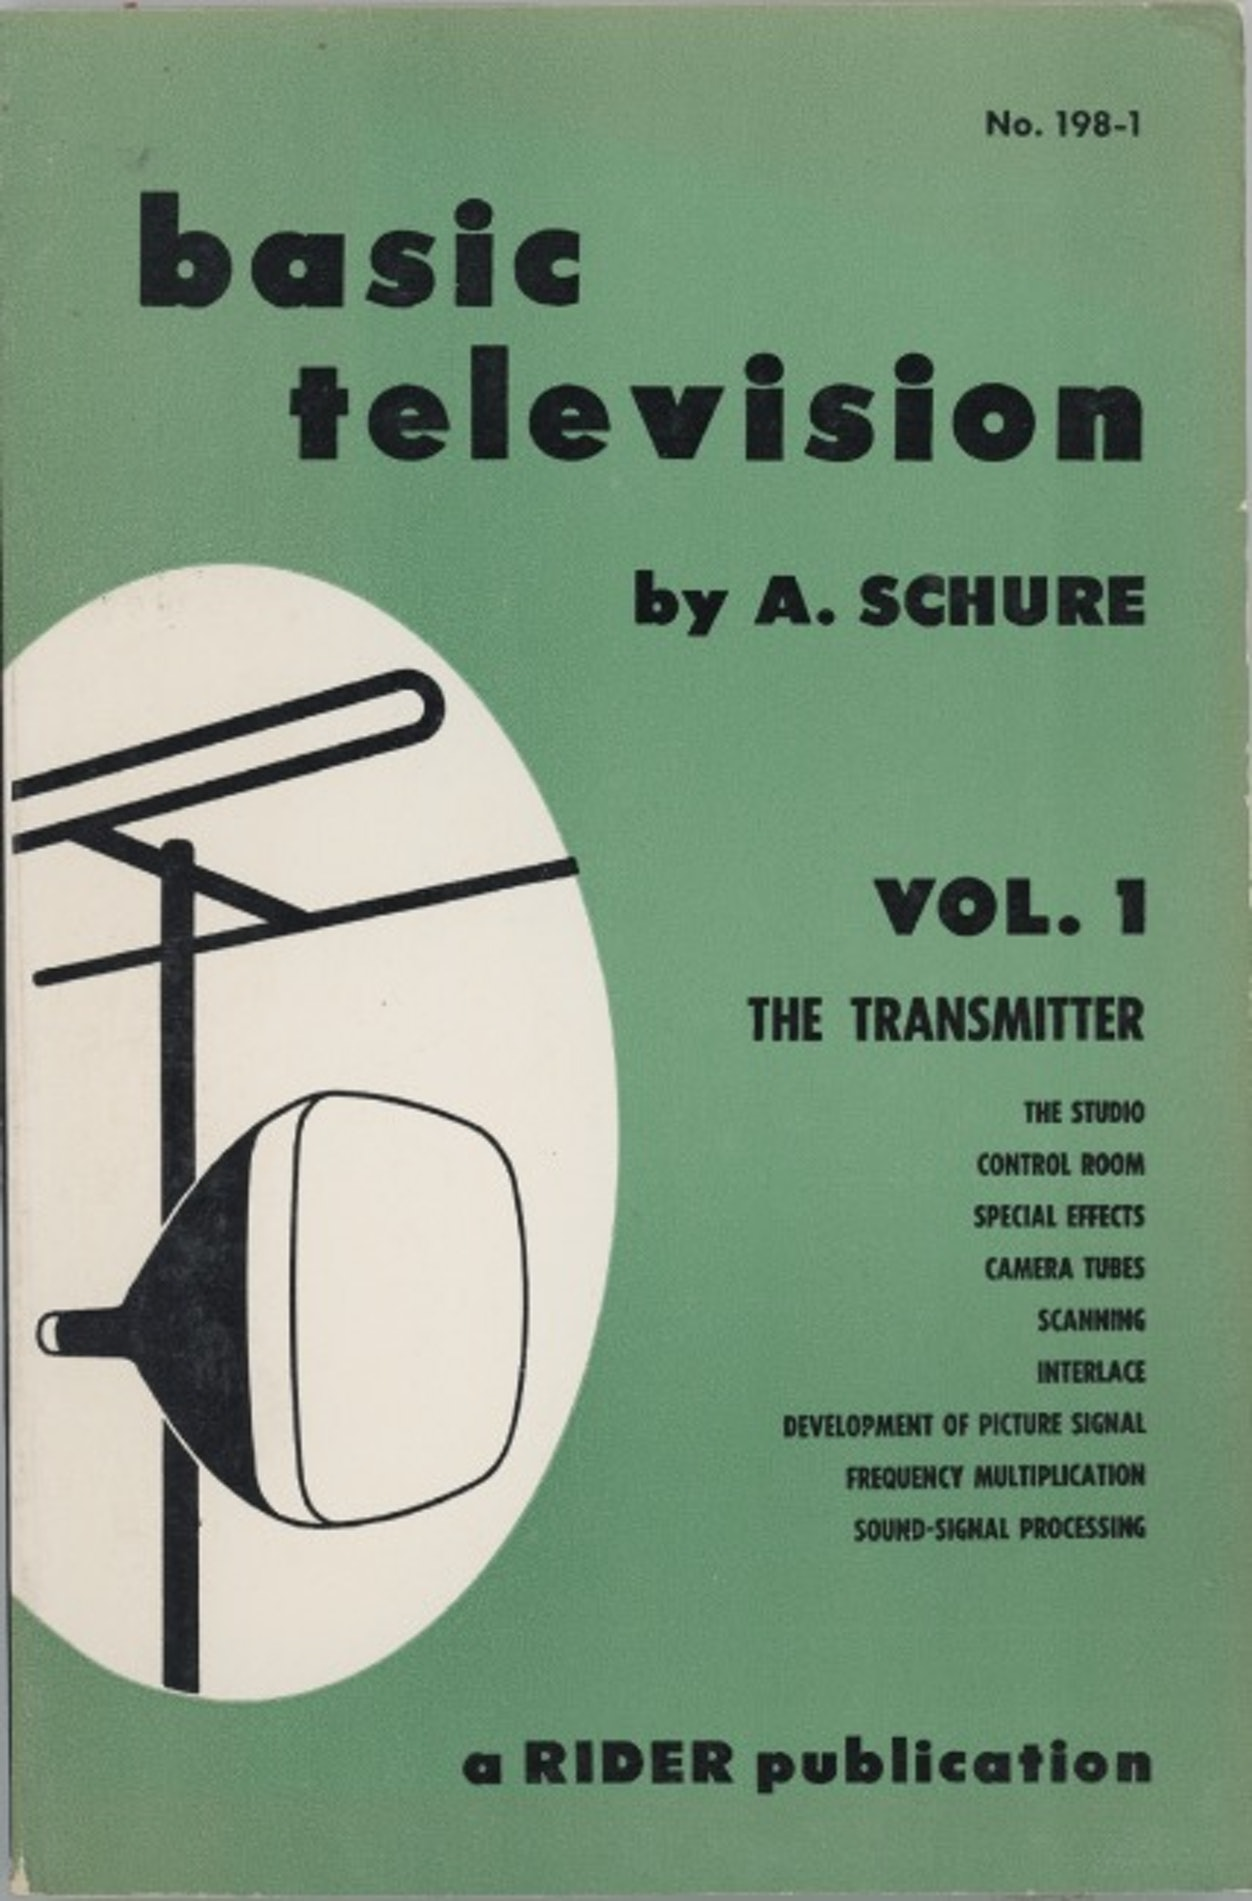 Basic Television Vol. 1 The Transmitter